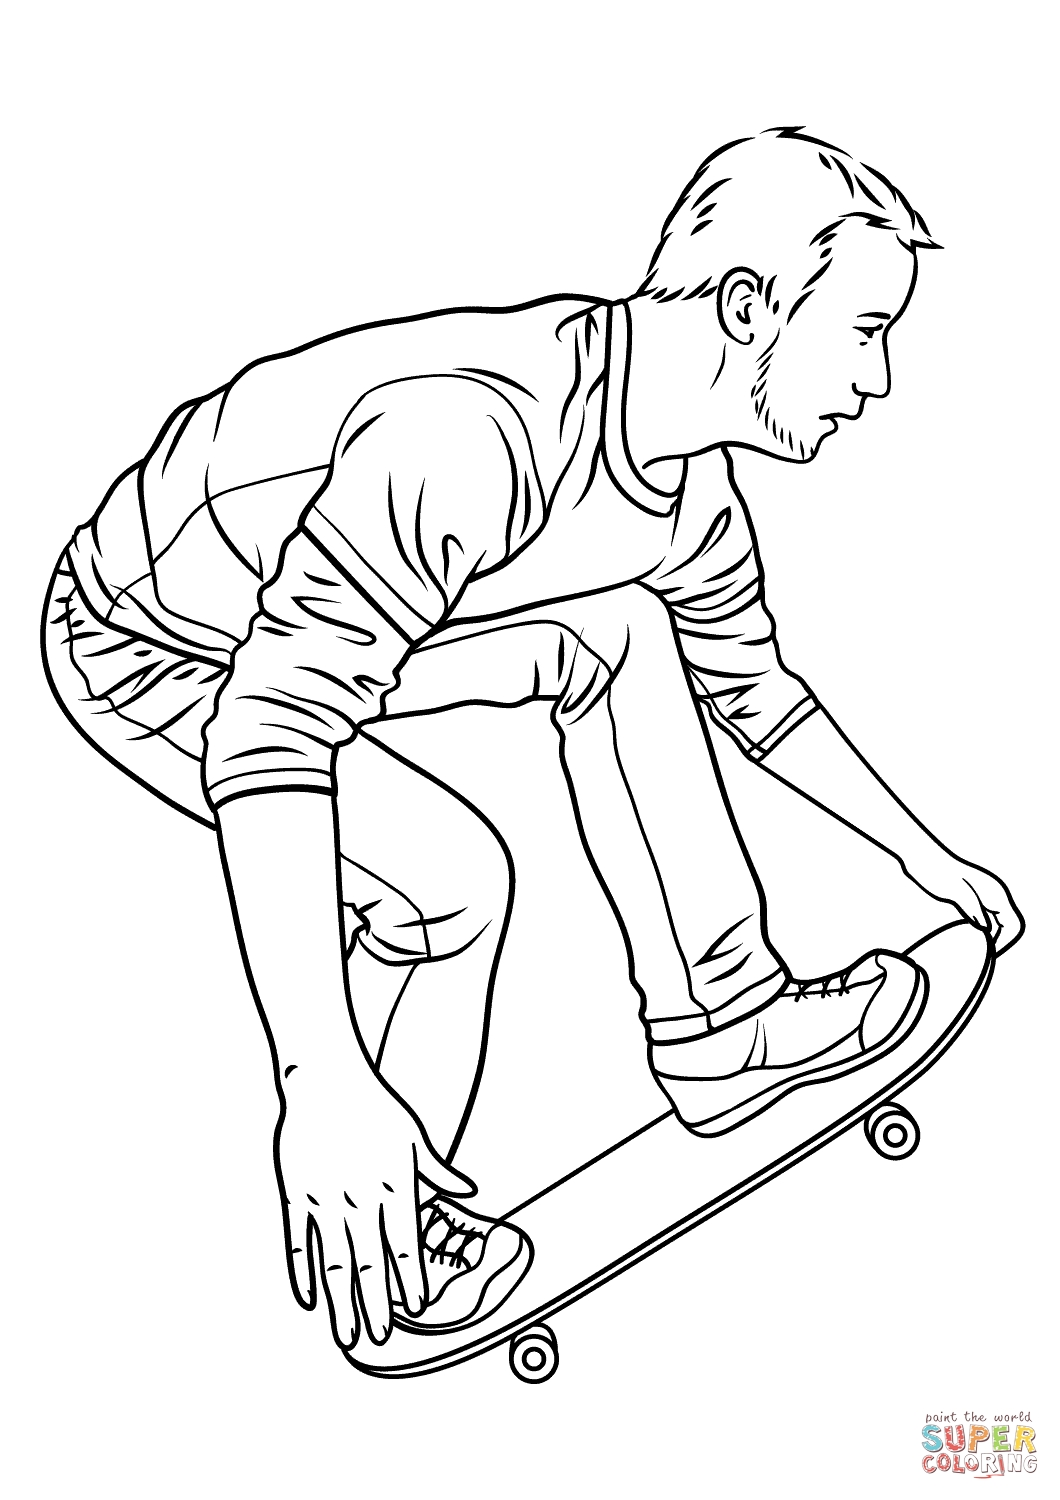 Skateboard Coloring Page - Skateboarding Coloring Page